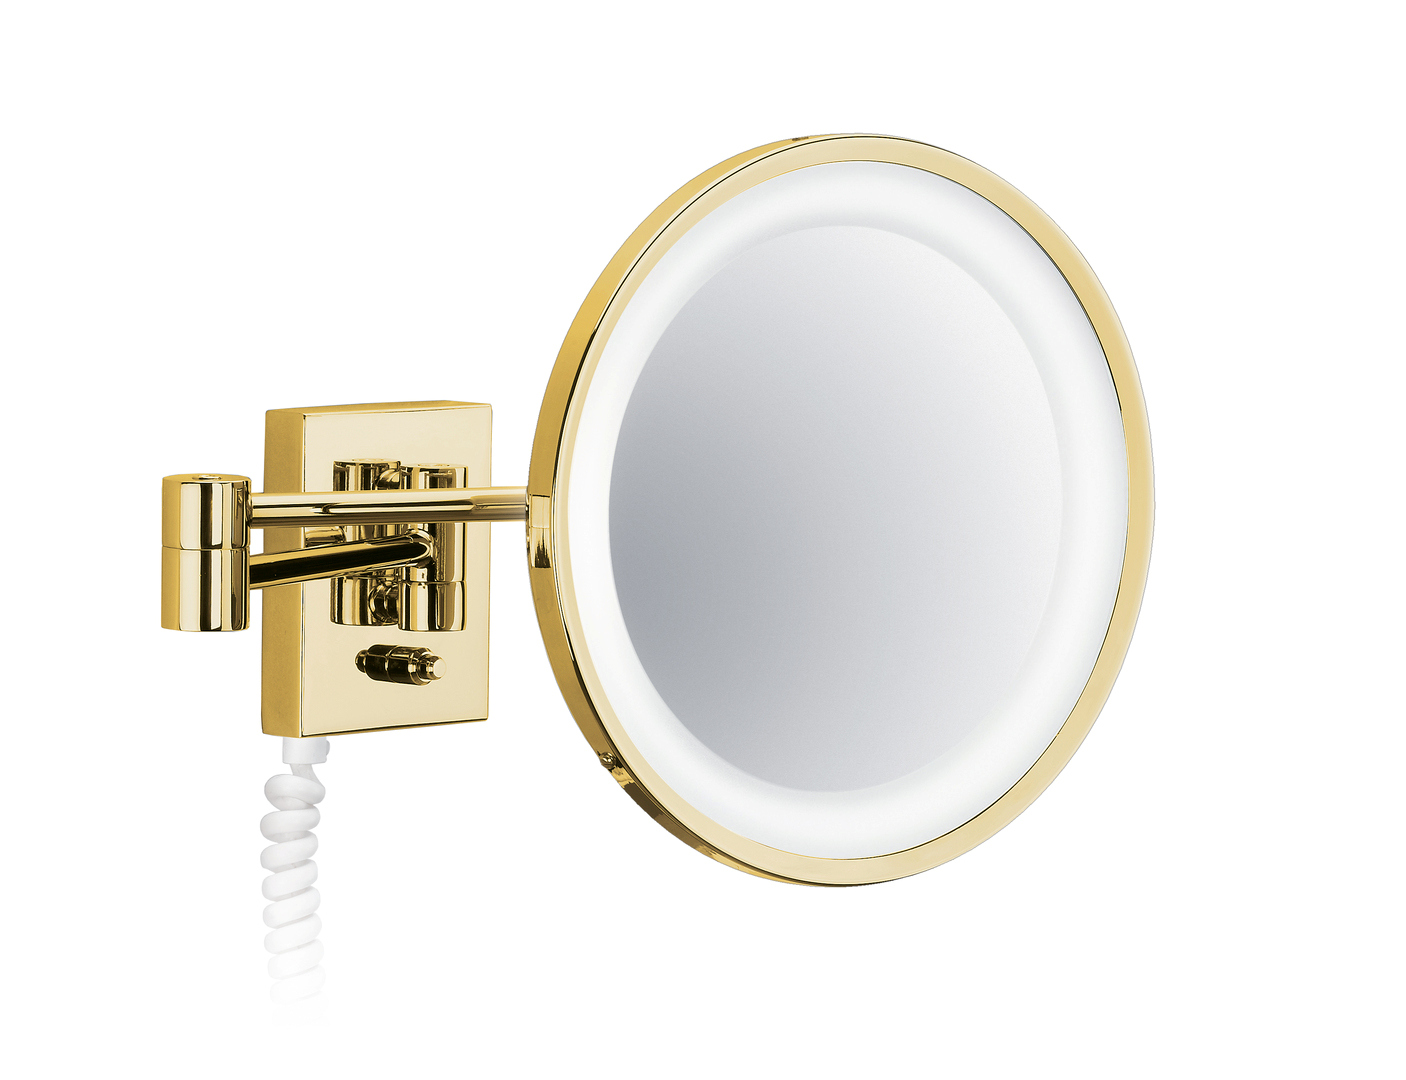 Decor Walther 0102020 DW-BS 40 PL Cosmetic Mirror Illuminated - Gold